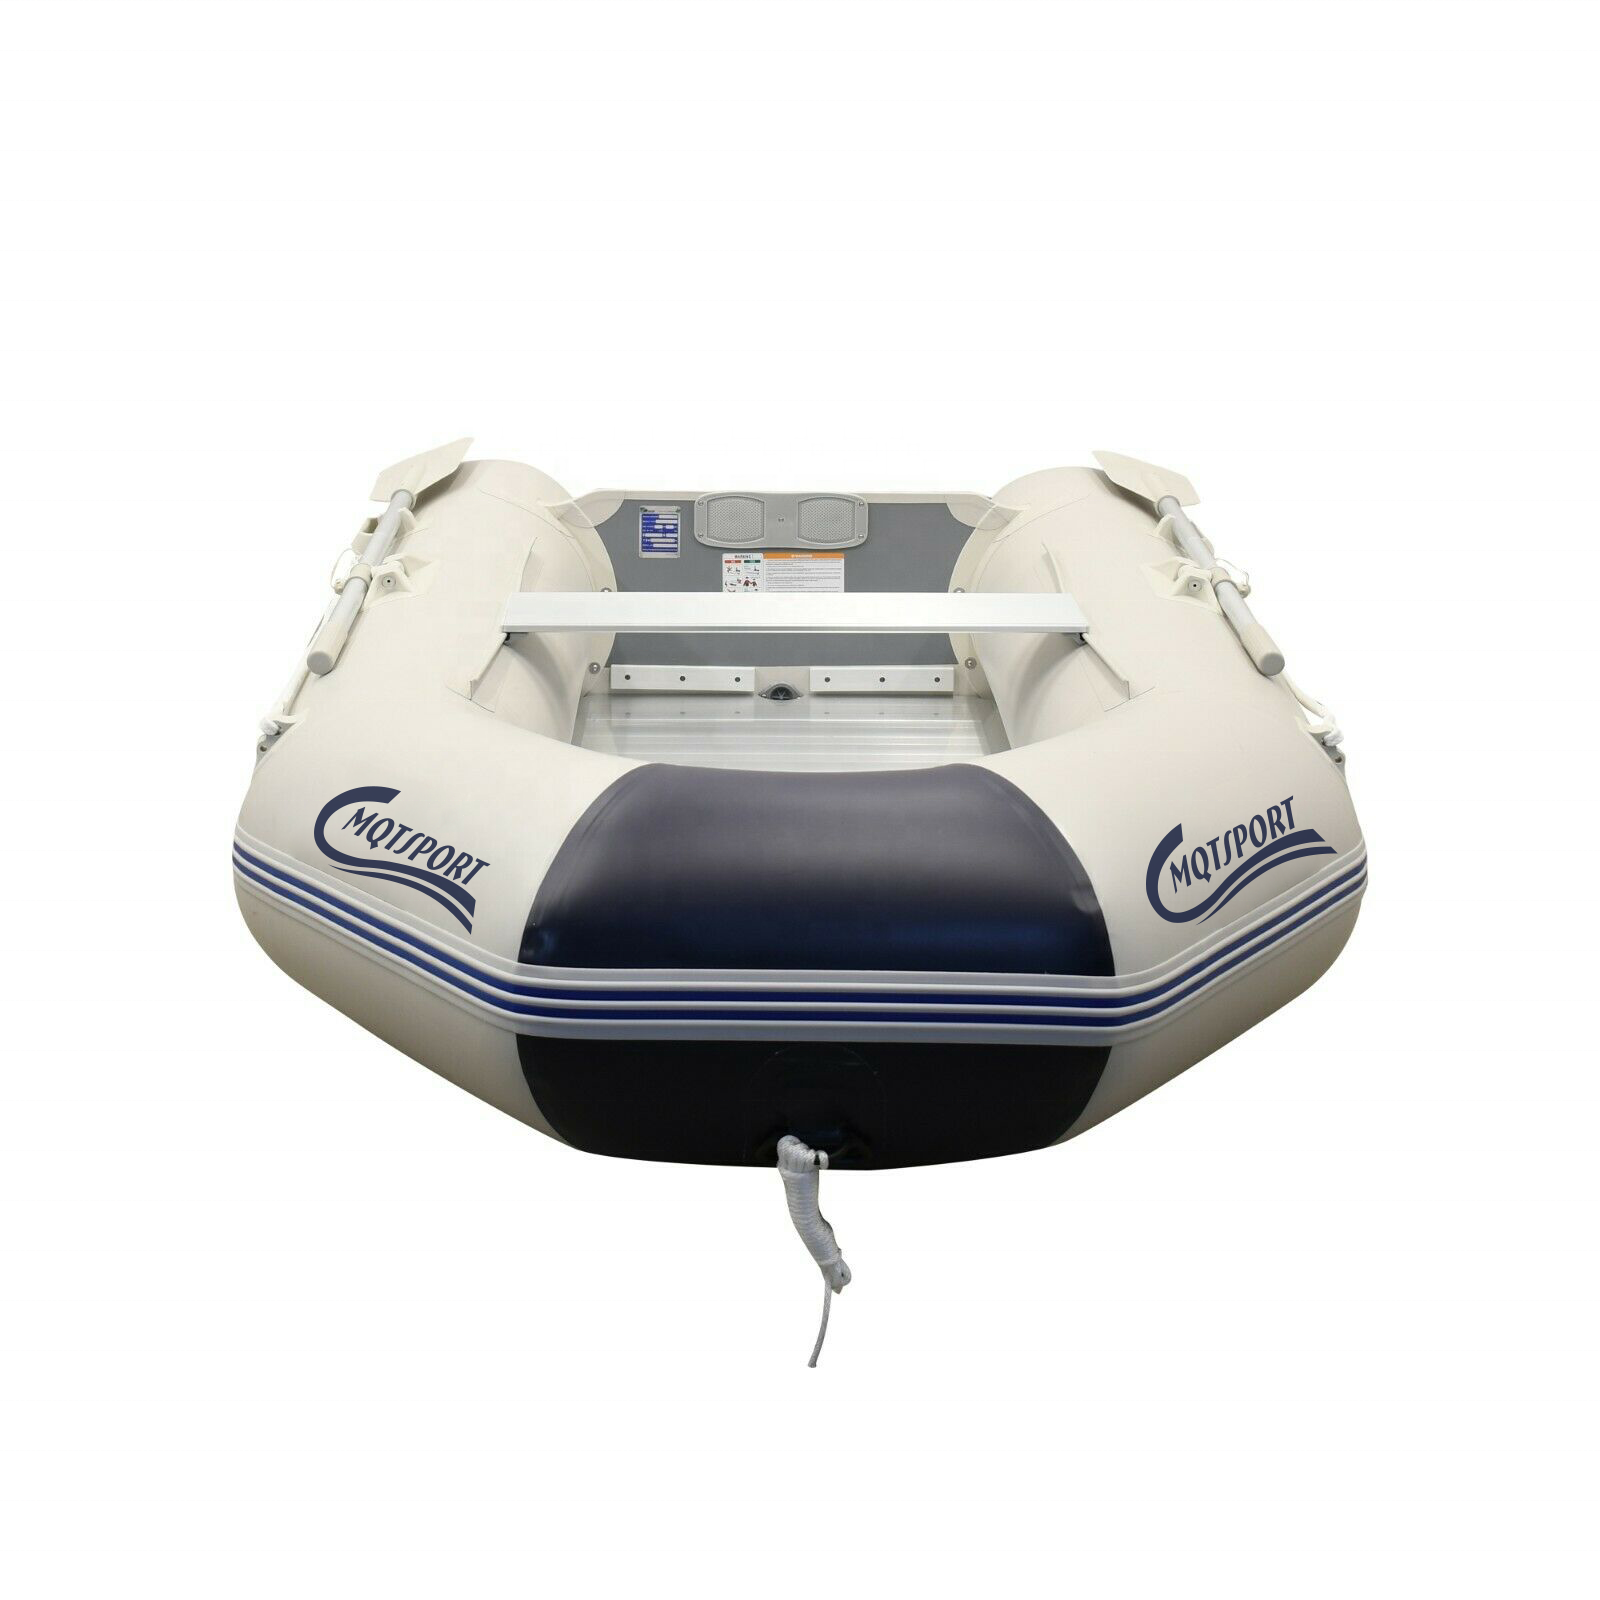 2 Person 7.5FT Inflatable Dinghy Boat Fishing Tender Rafting Water Sports